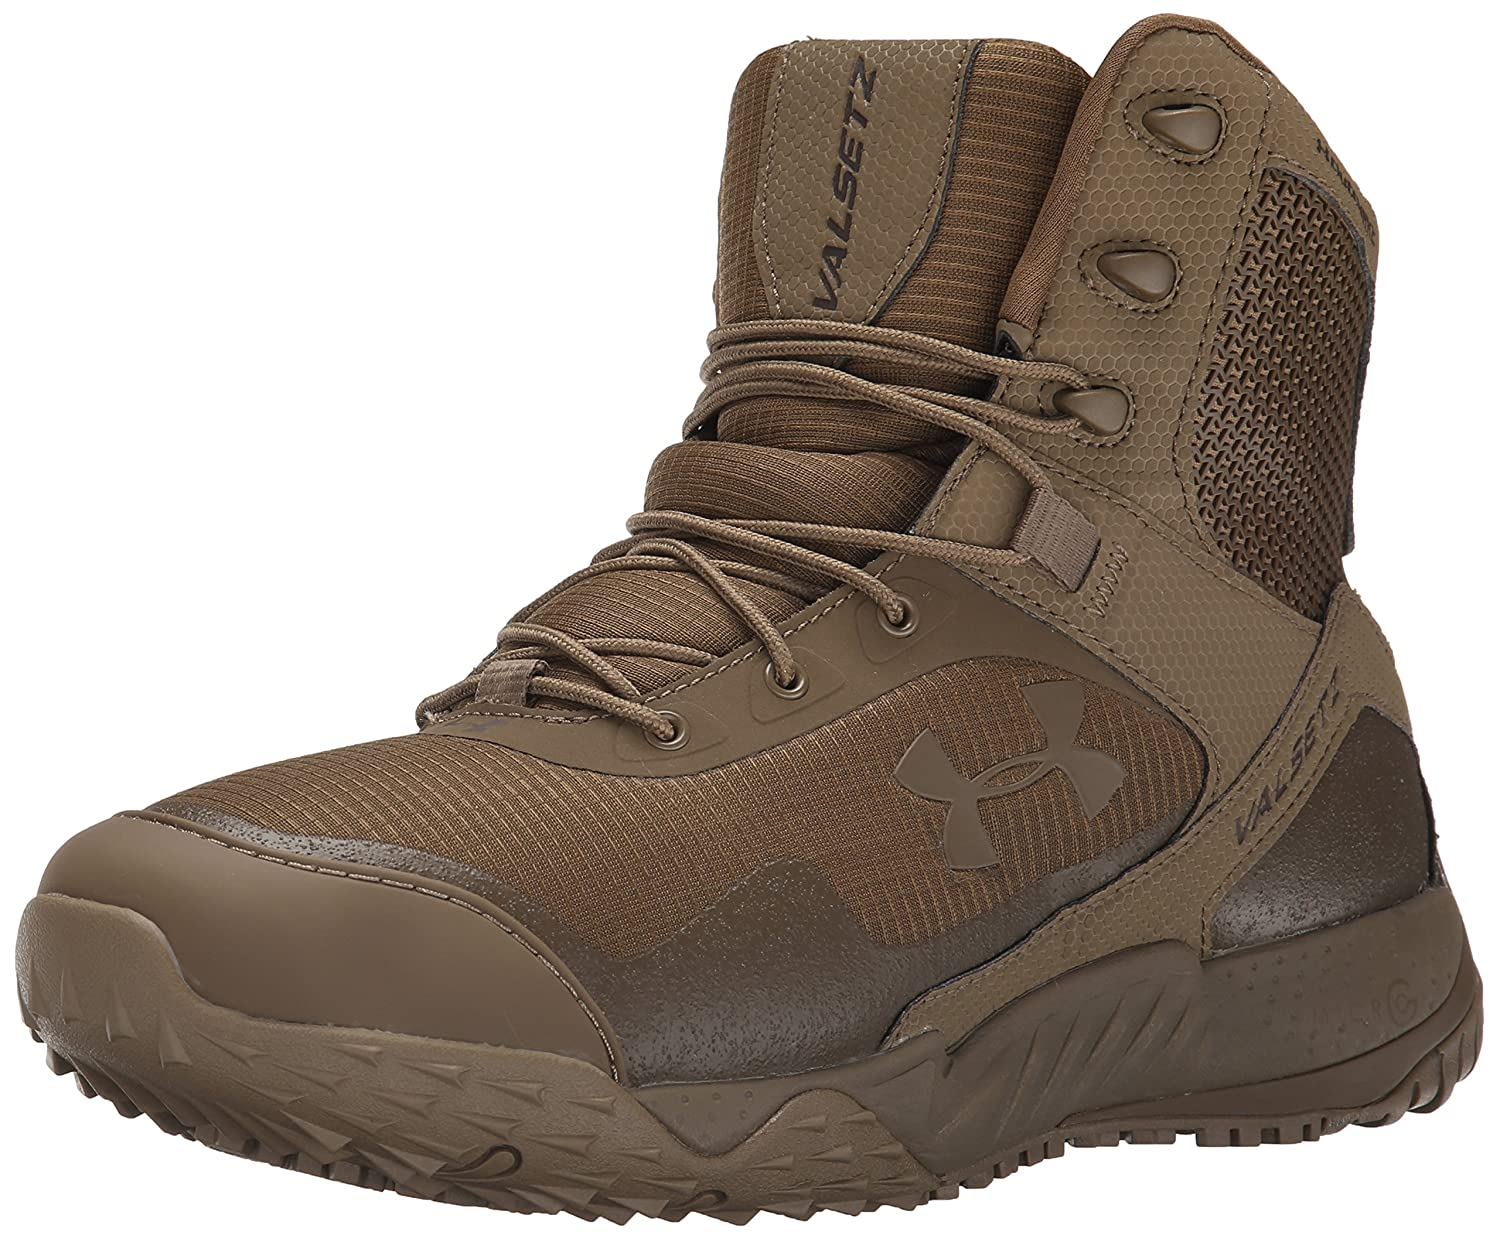 TALLA 46 EU. Under Armour Men 's Valsetz RTS Botas de Senderismo